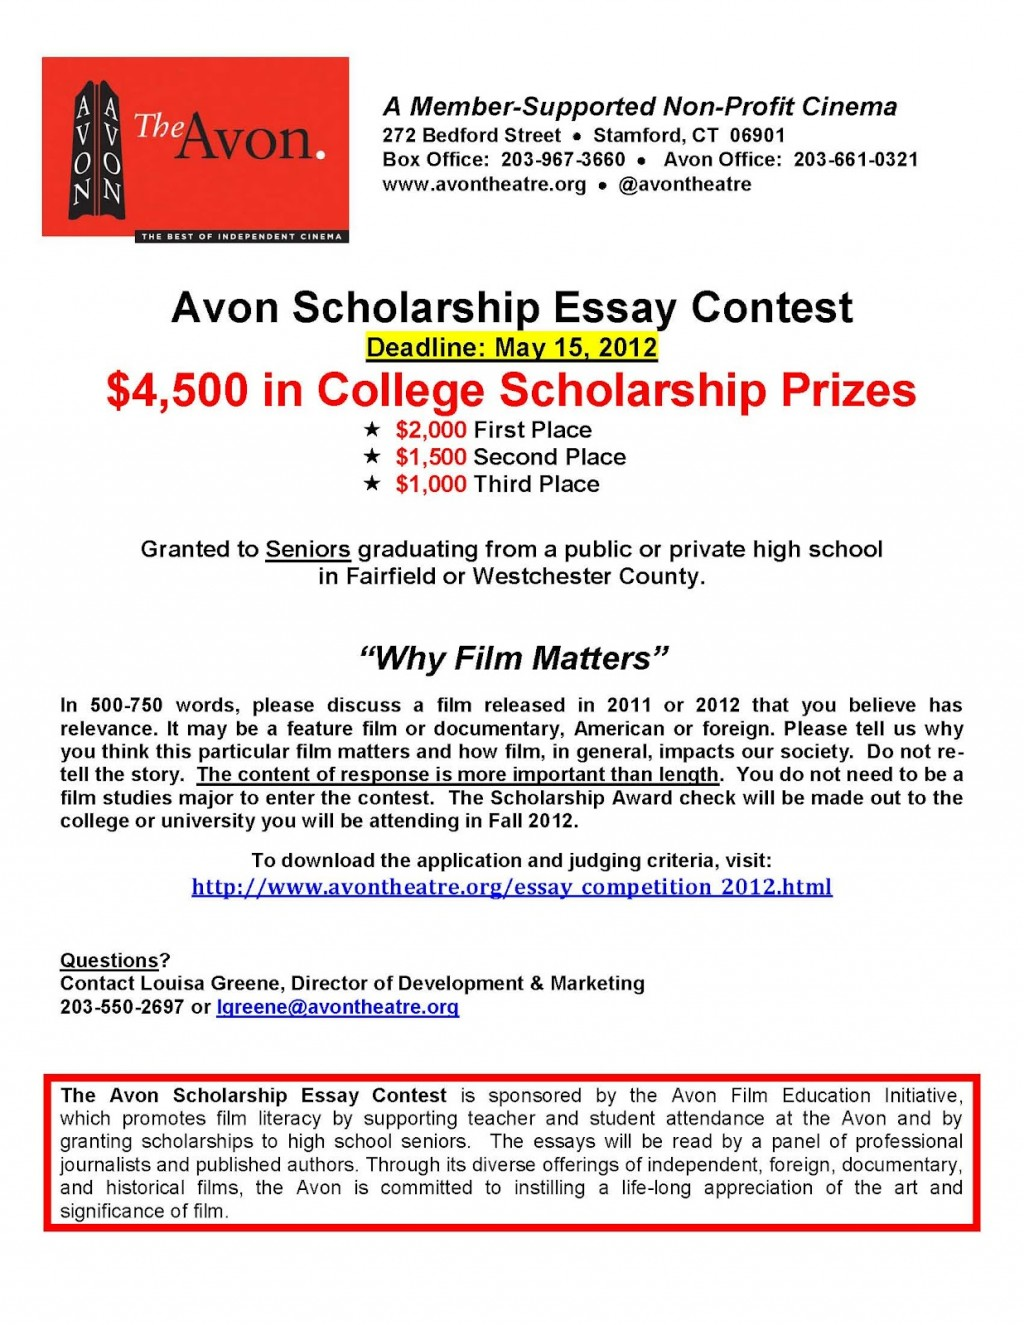 002 Essay Example No Scholarships College Scholarship Prowler Free For High School Seniors Avonscholarshipessaycontest2012 In Texas California Class Of Short Exceptional Undergraduates Students 2019 Large